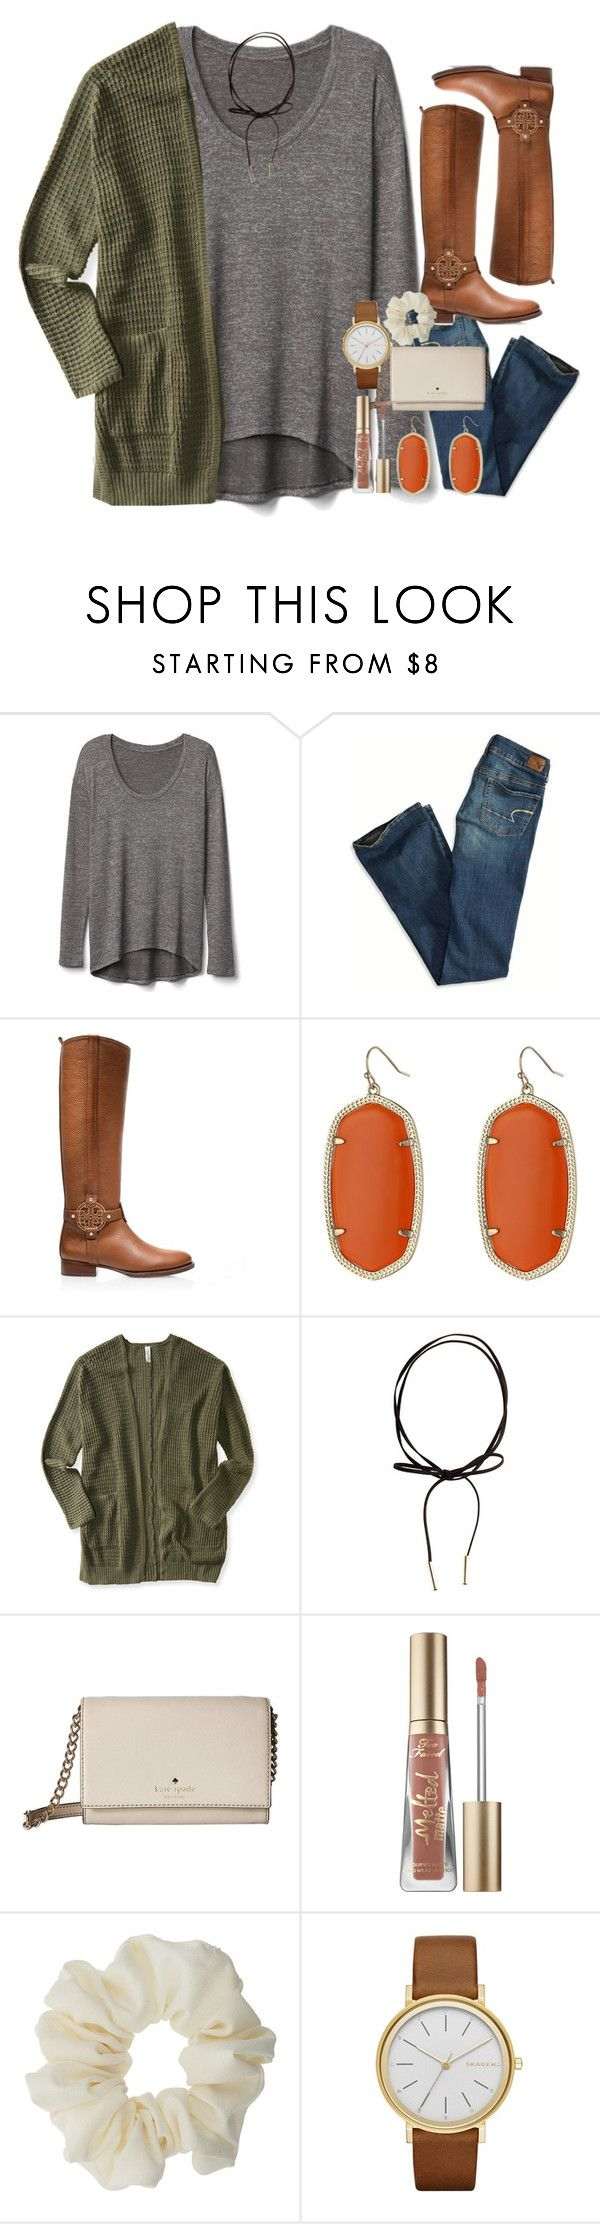 """""""what are 3 things you're thankful for?"""" by sdyerrtx ❤ liked on Polyvore featuring Gap, American Eagle Outfitters, Tory Burch, Kendra Scott, Aéropostale, Kate Spade, Too Faced Cosmetics, Miss Selfridge and Skagen"""